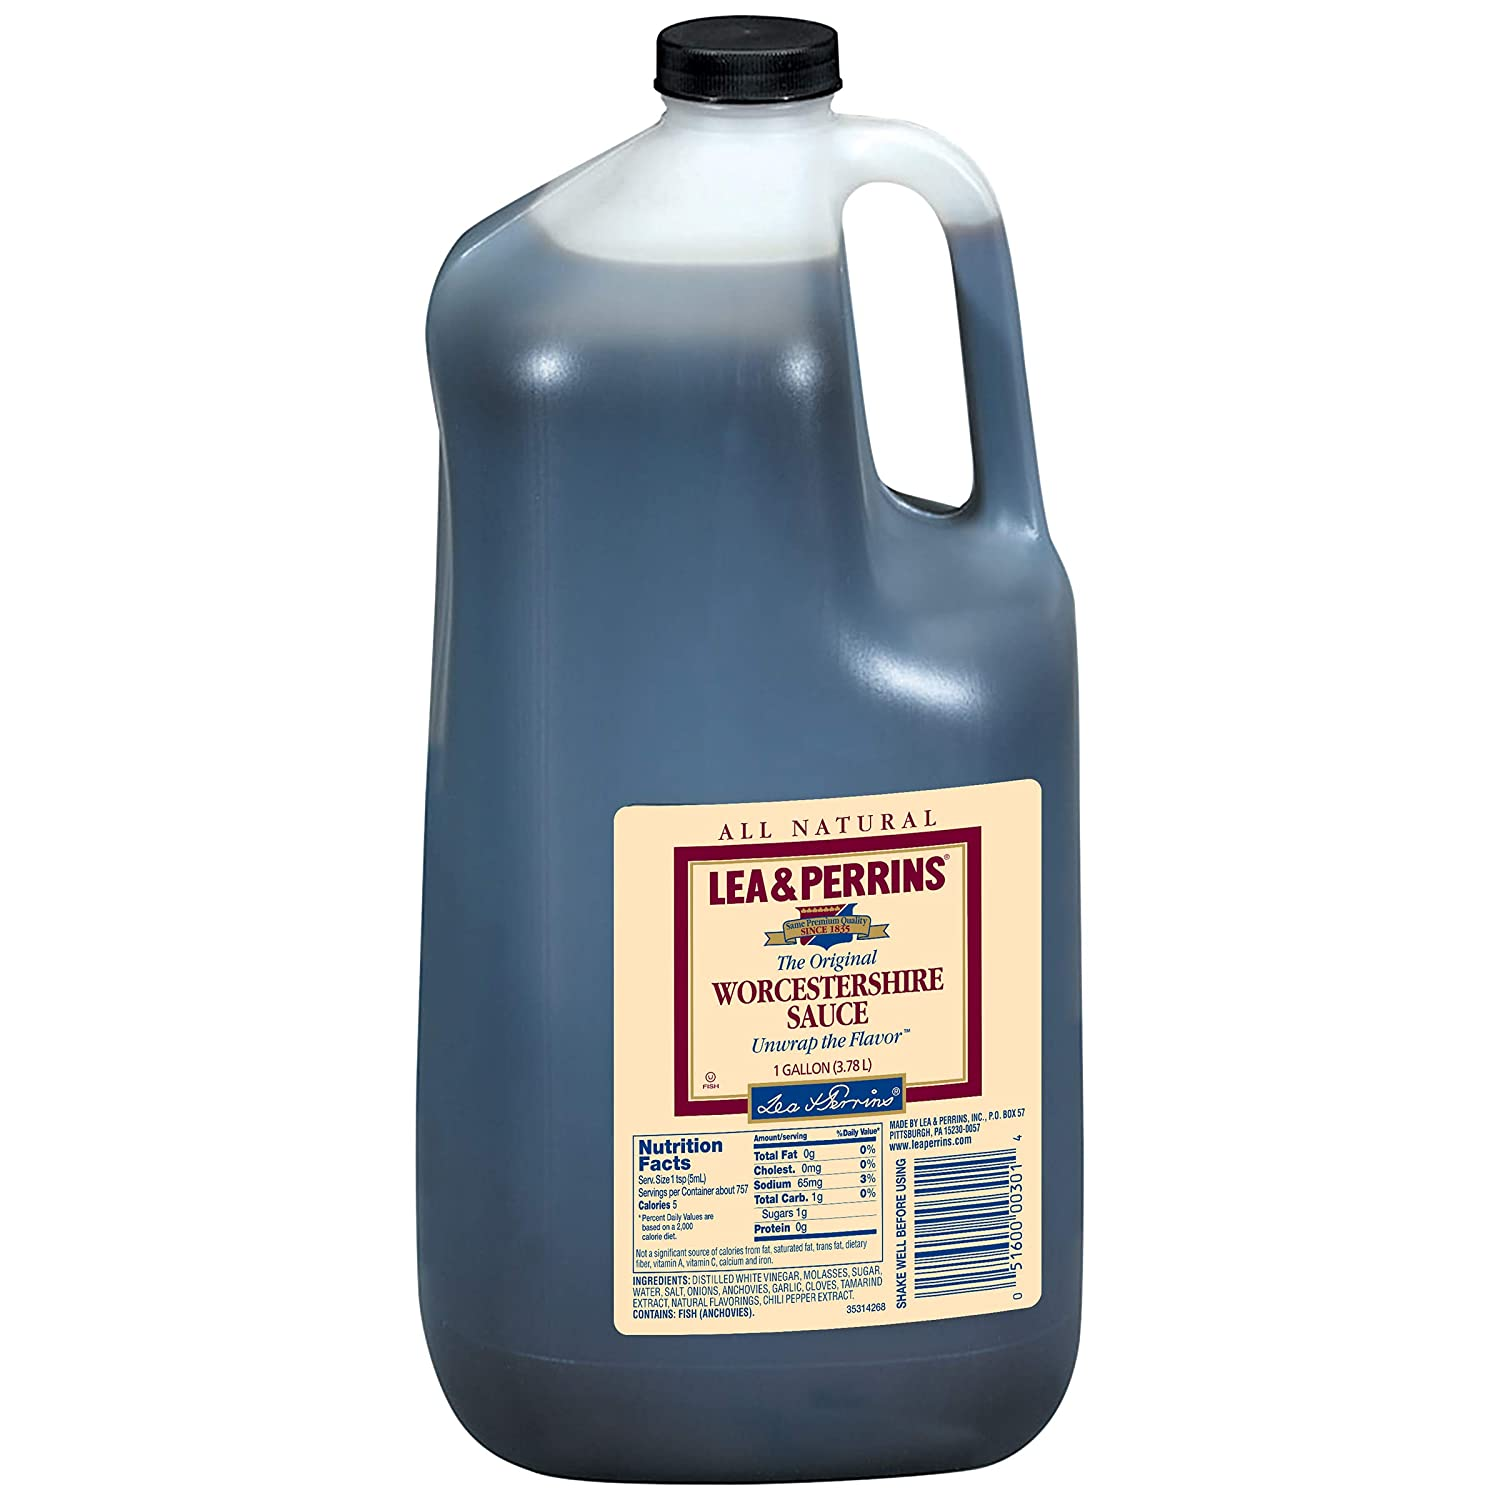 Lea & Perrins Worcestershire Sauce (1 Gallon Jug)